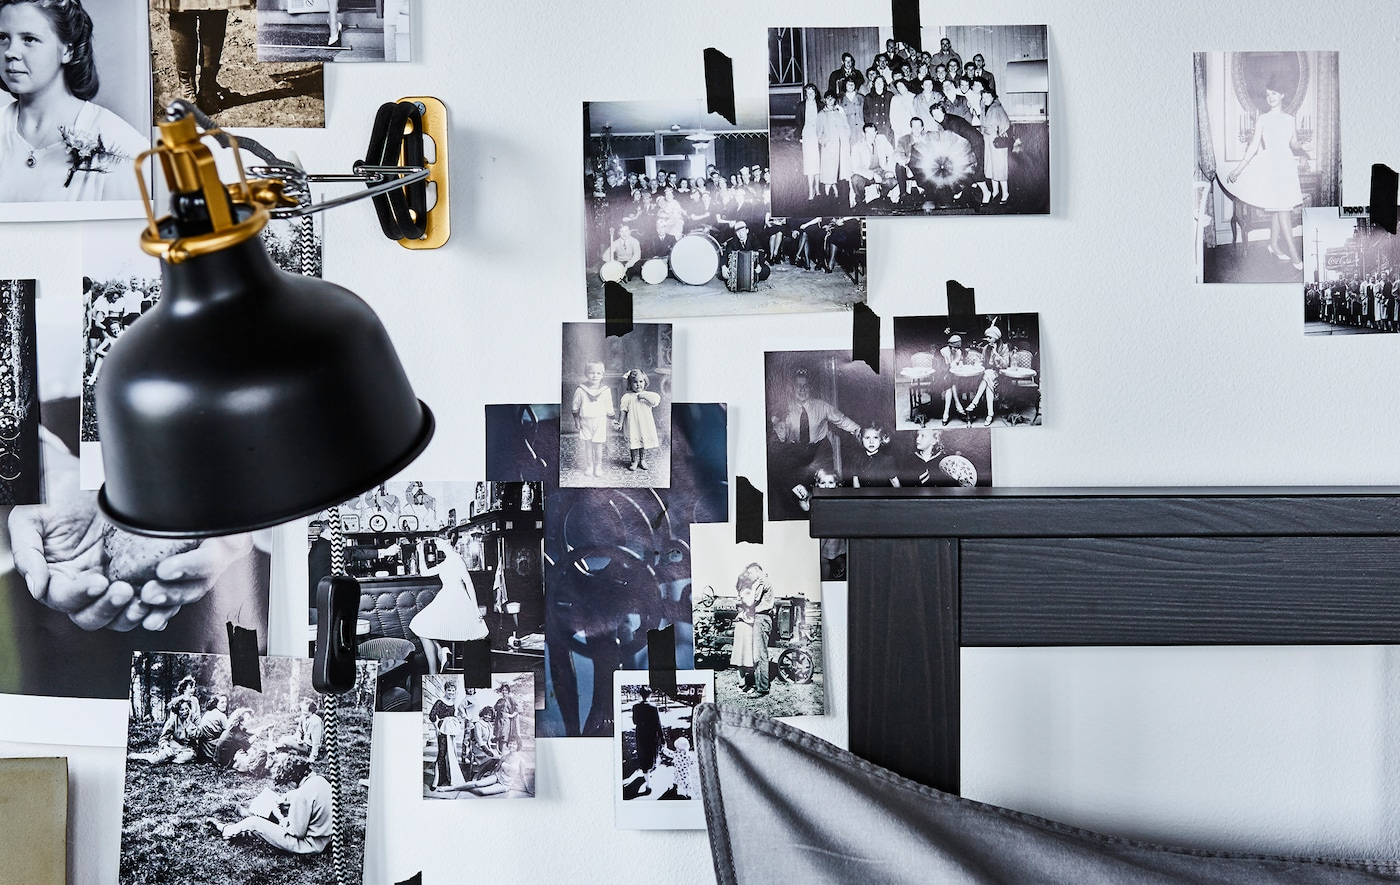 Looking for small bedroom ideas? Beautify your bed frame with a photo wall collage. Shine some light at it with a lamp such as IKEA RANARP N wall/clamp spotlight in black. You can easily aim the light where you need it as the lamp head is adjustable.